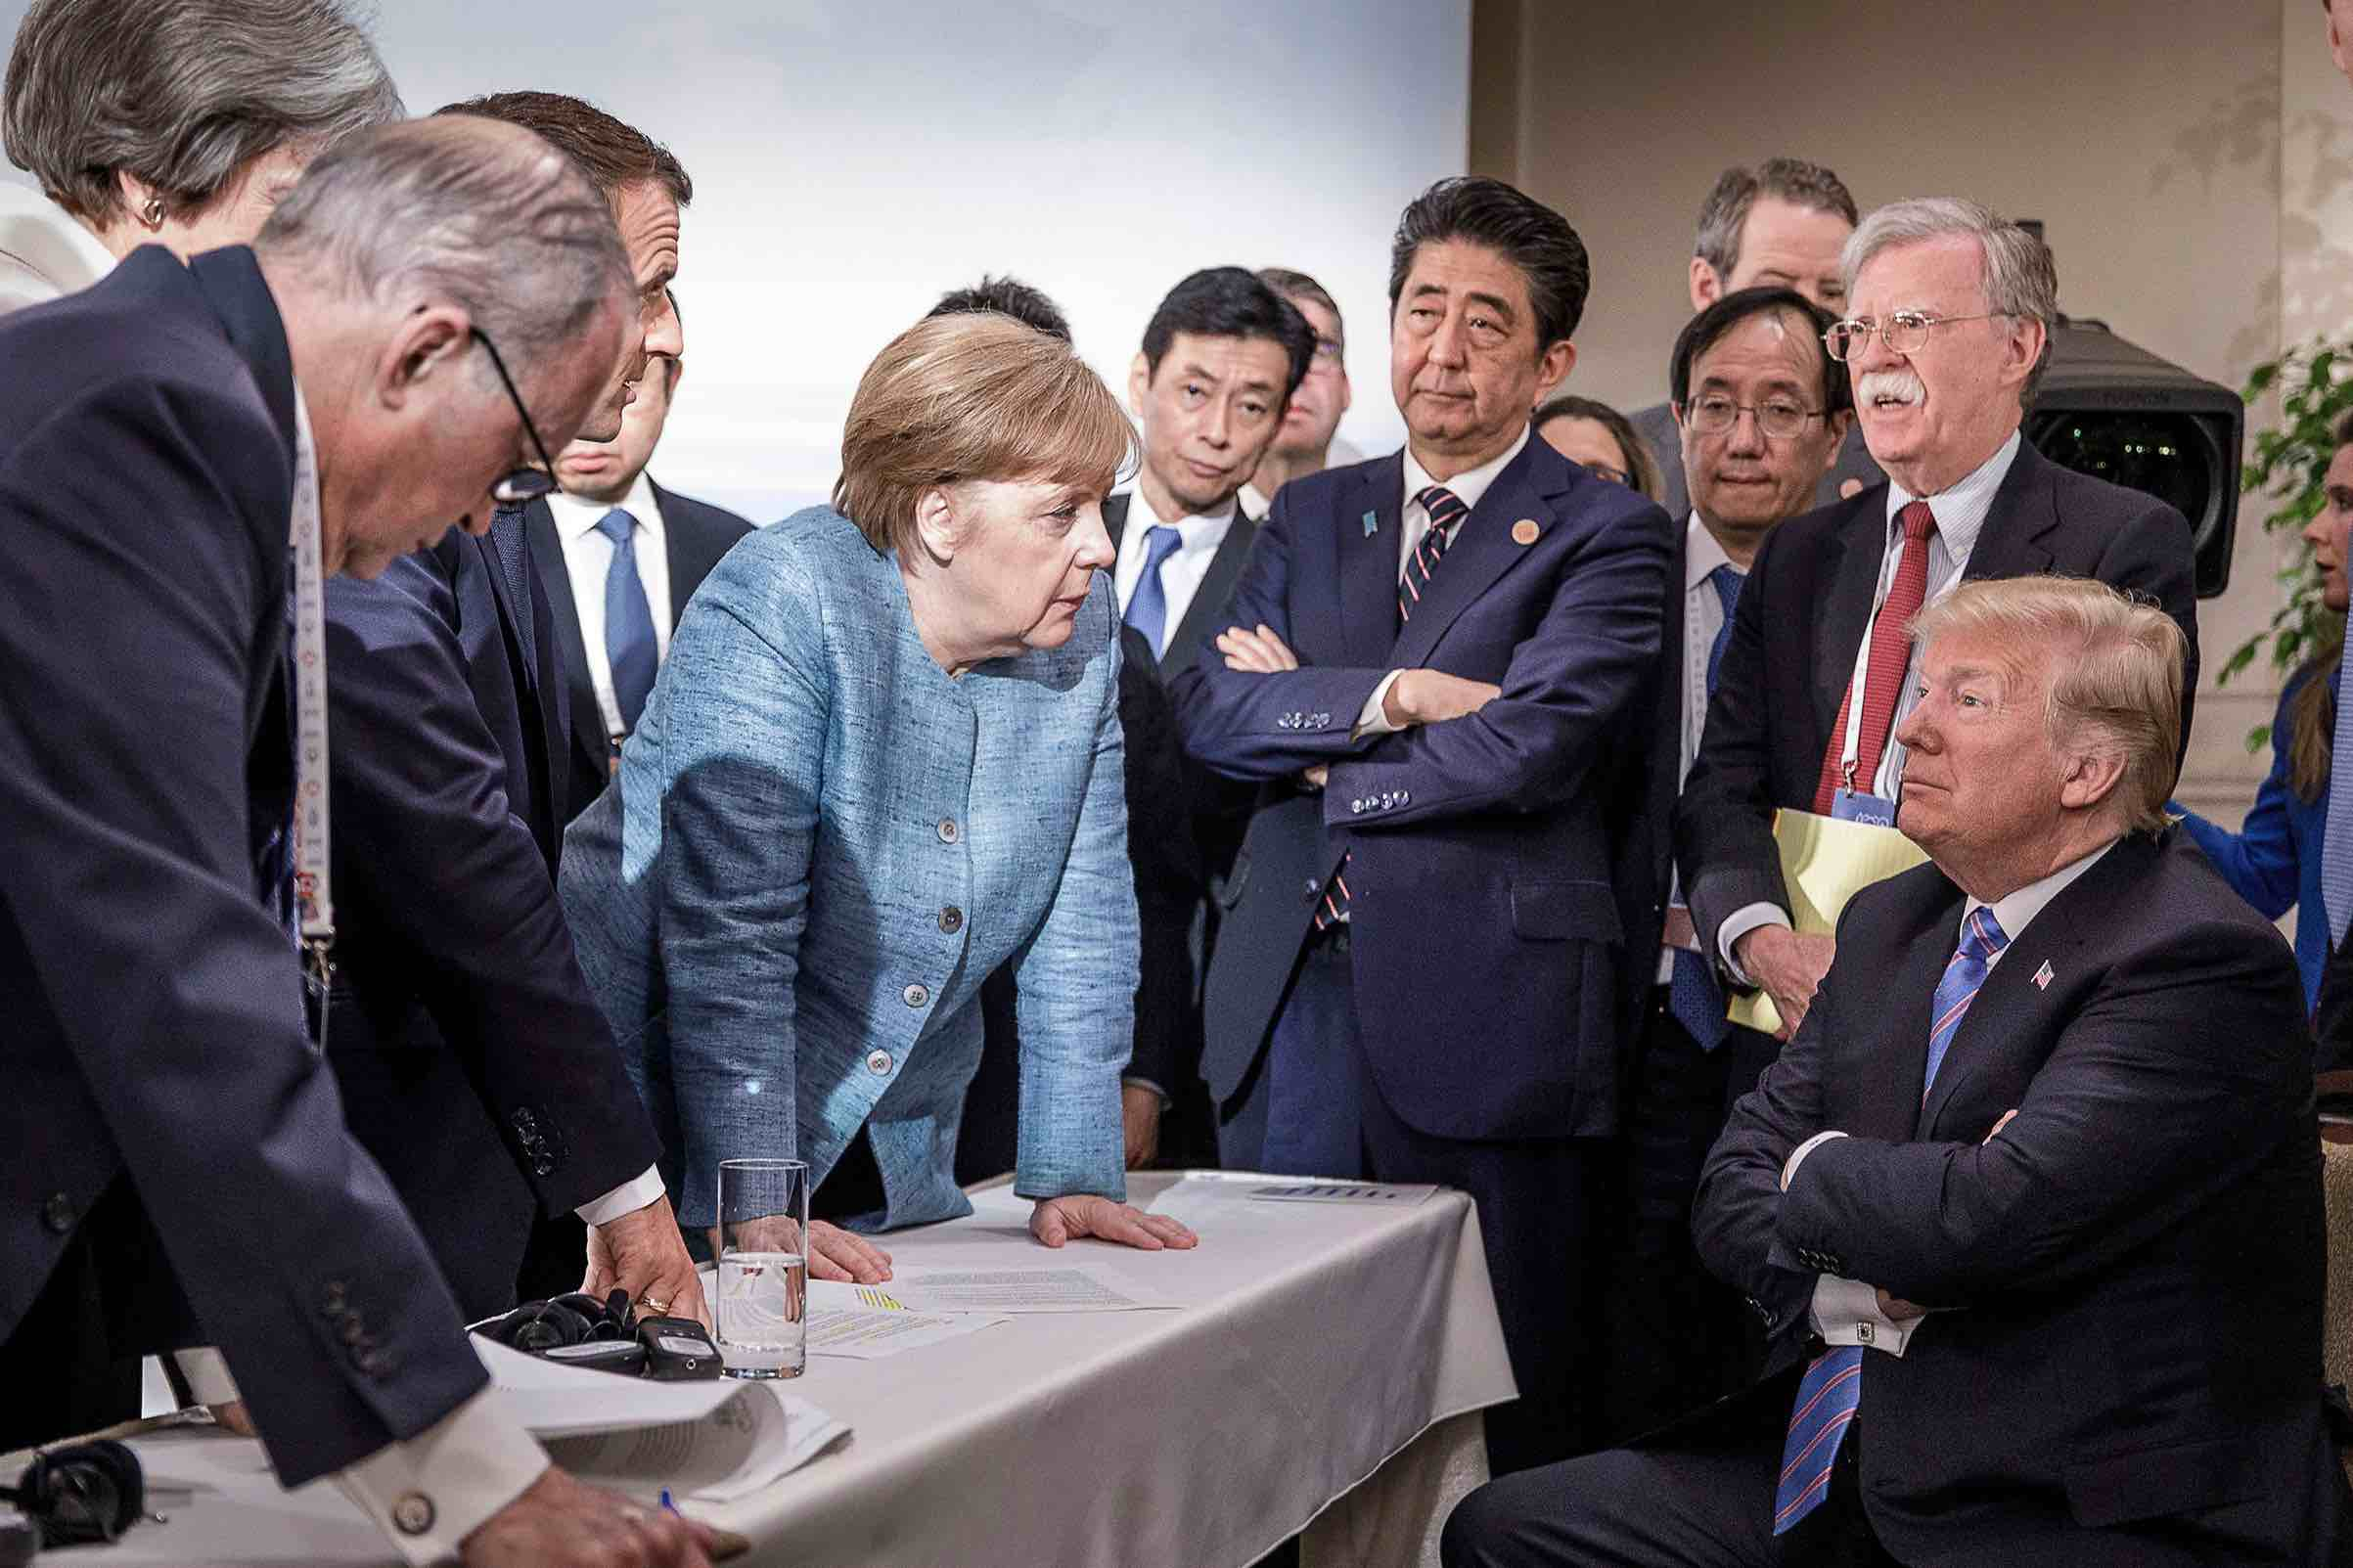 Angela Merkel stands and looks daggers at Trump, while Shinzo Abe is disdainful, with arms crossed, and Donald Trump is petulant, also with arms crossed